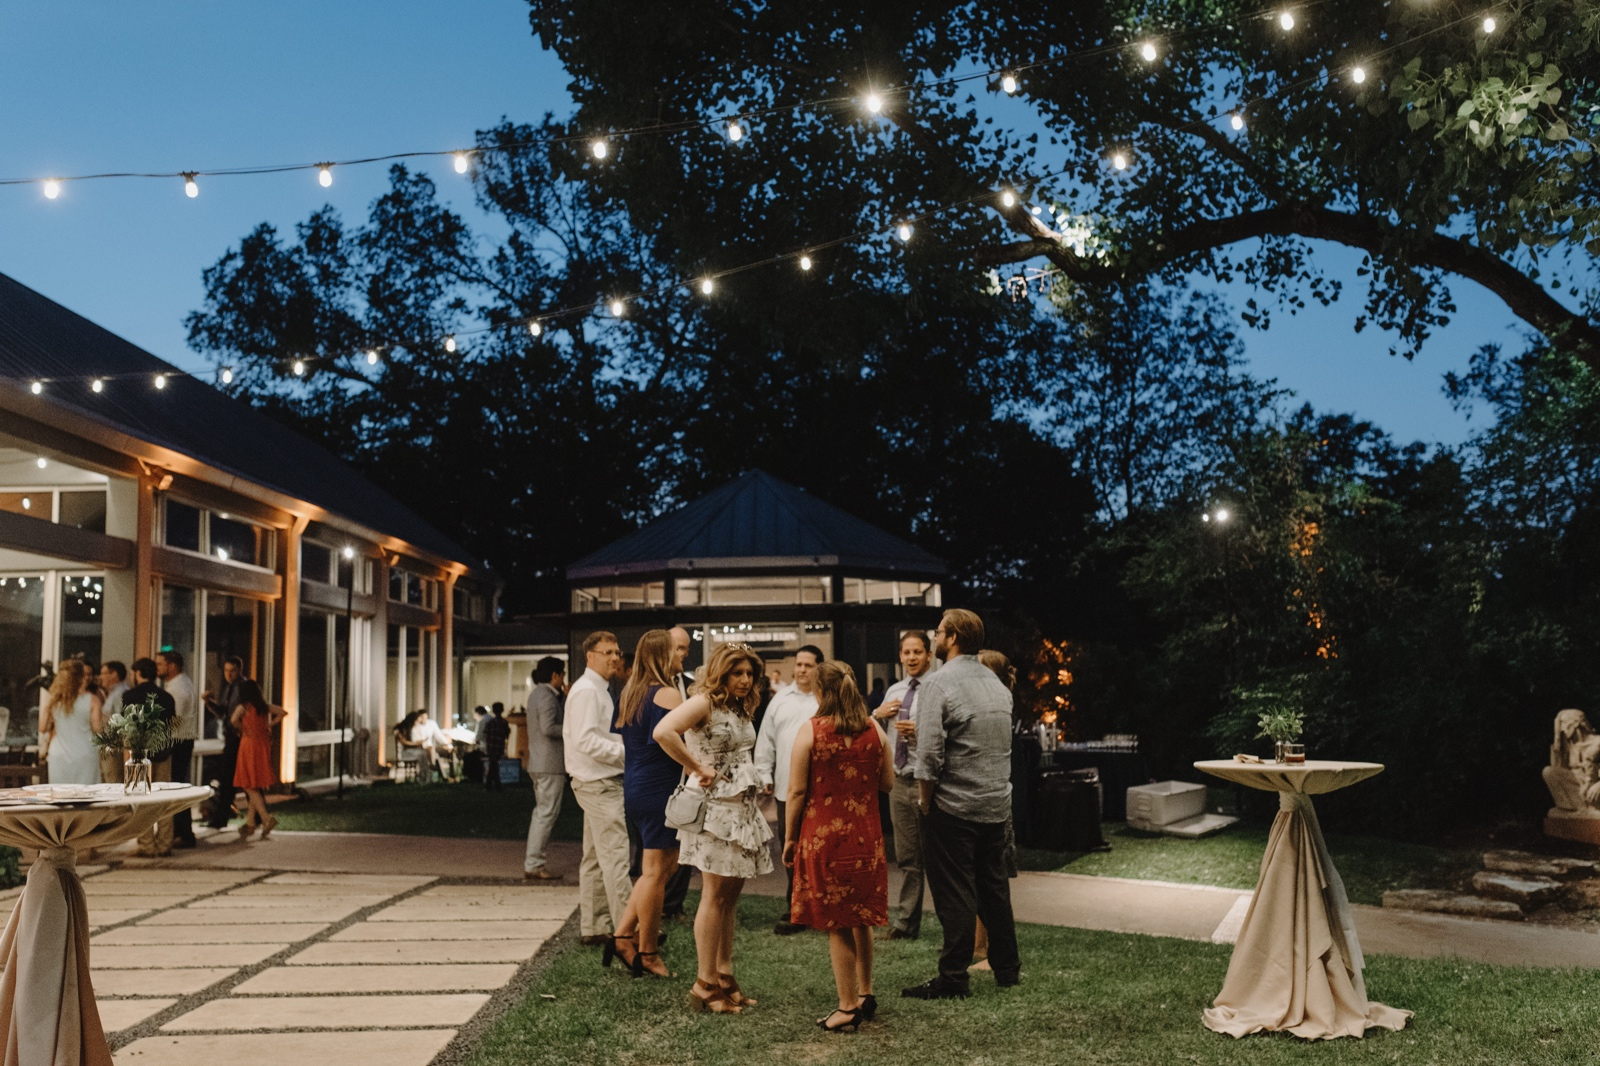 People gathering on the lawn of an outdoor cocktail reception at the Umlauf Sculpture Garden